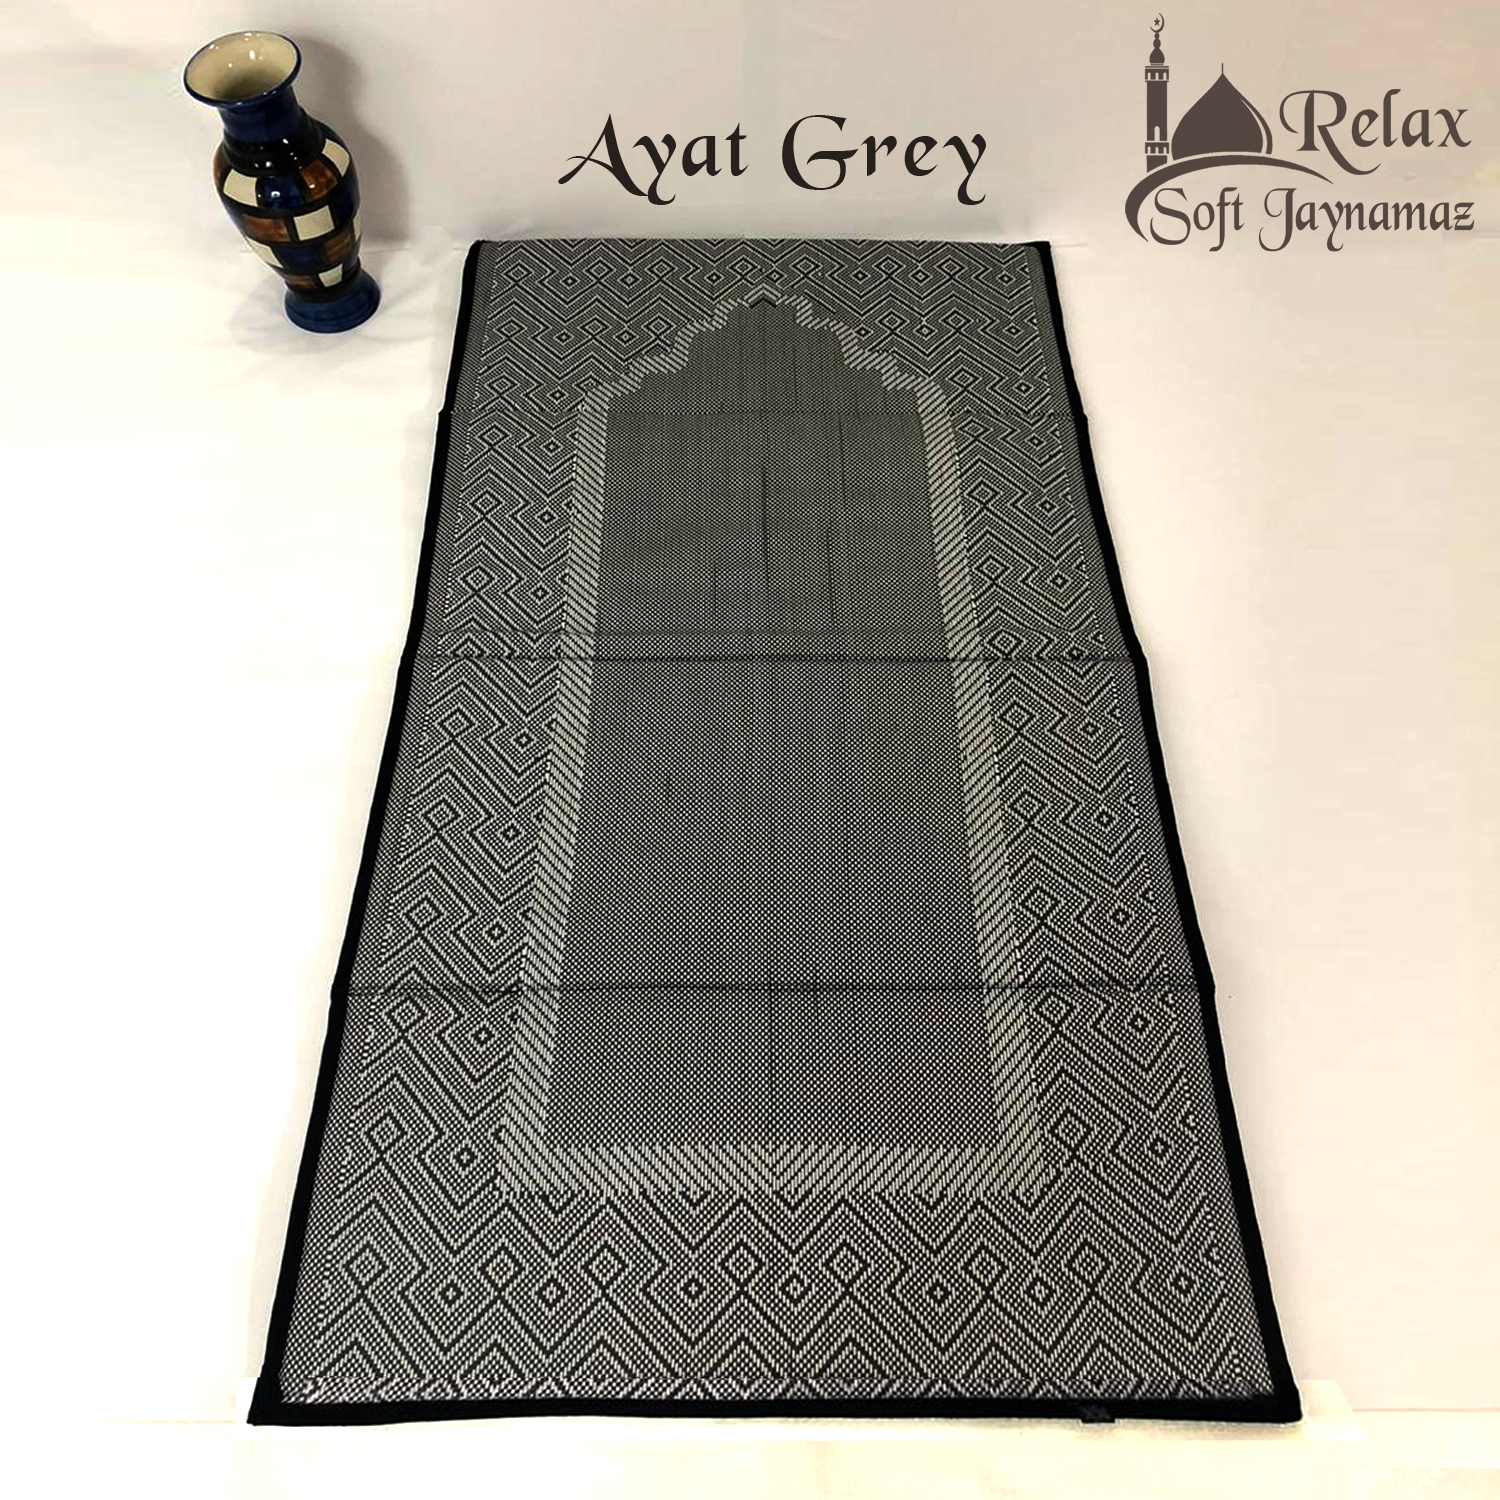 Relax Soft Jaynamaz Foam Padded Prayer Mat